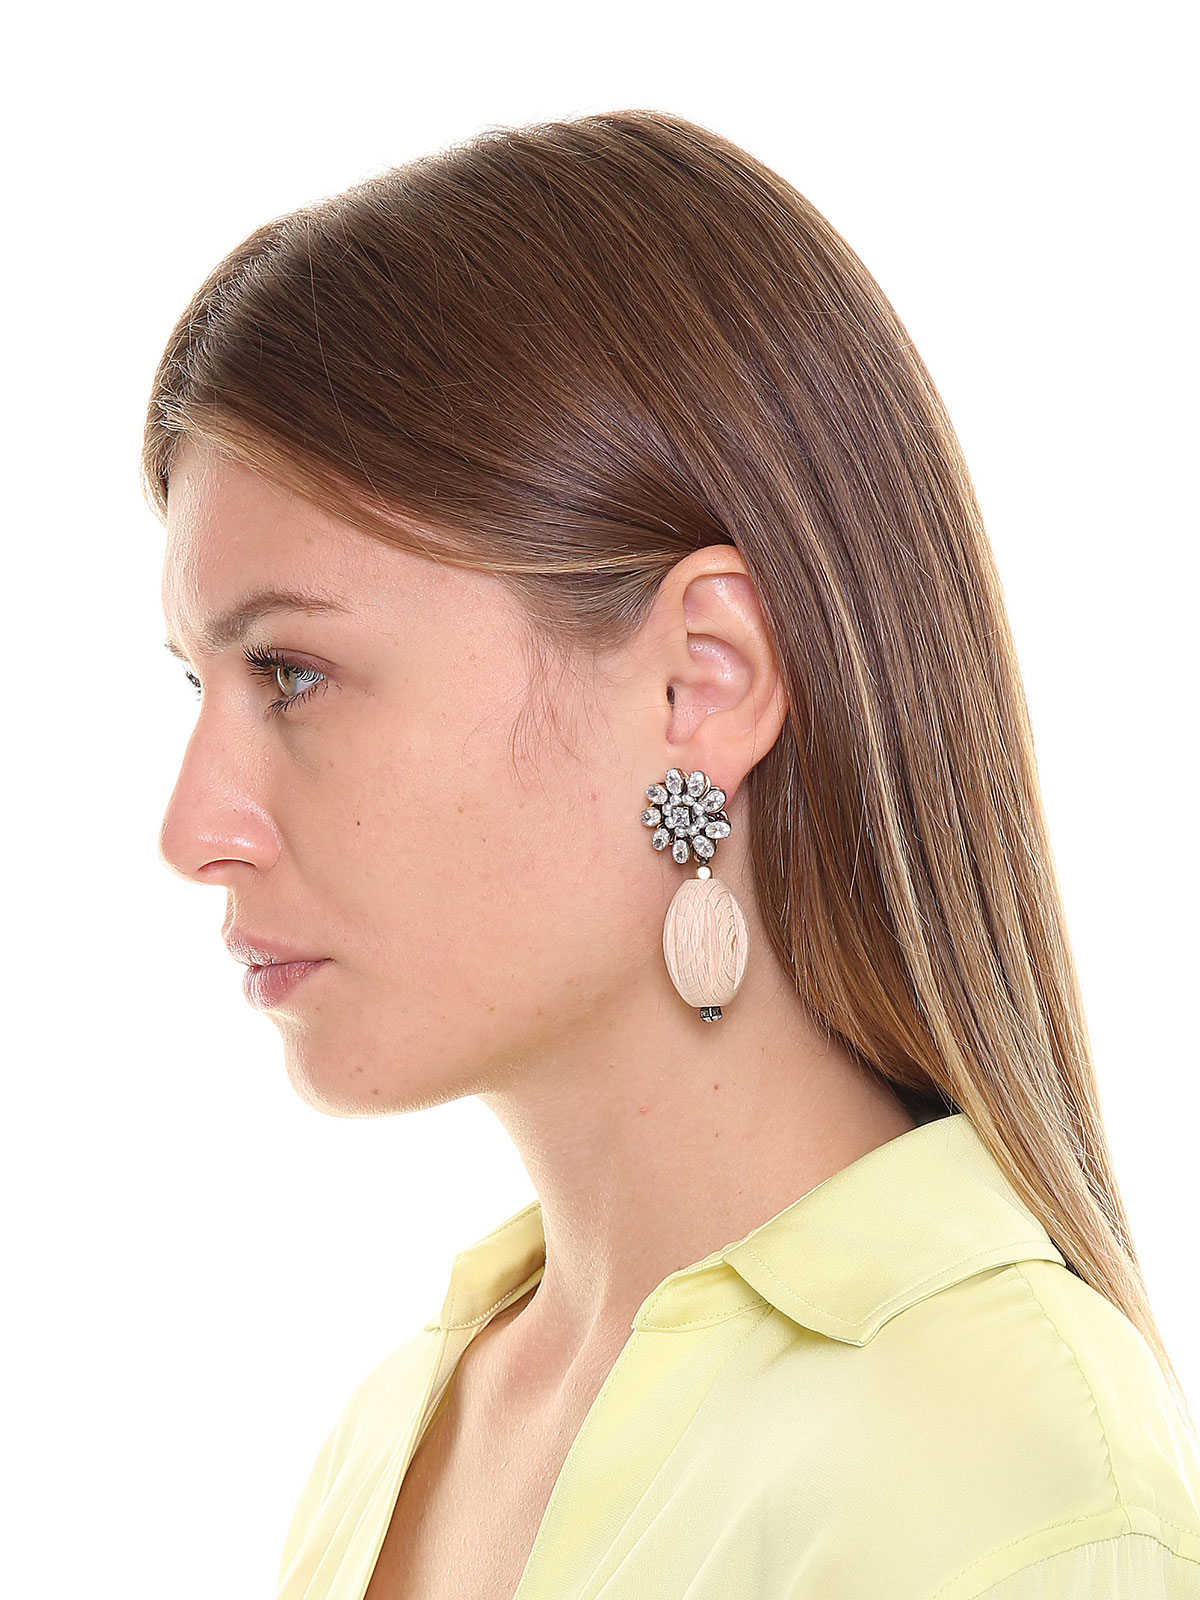 Jewel earrings with pendent wood elements